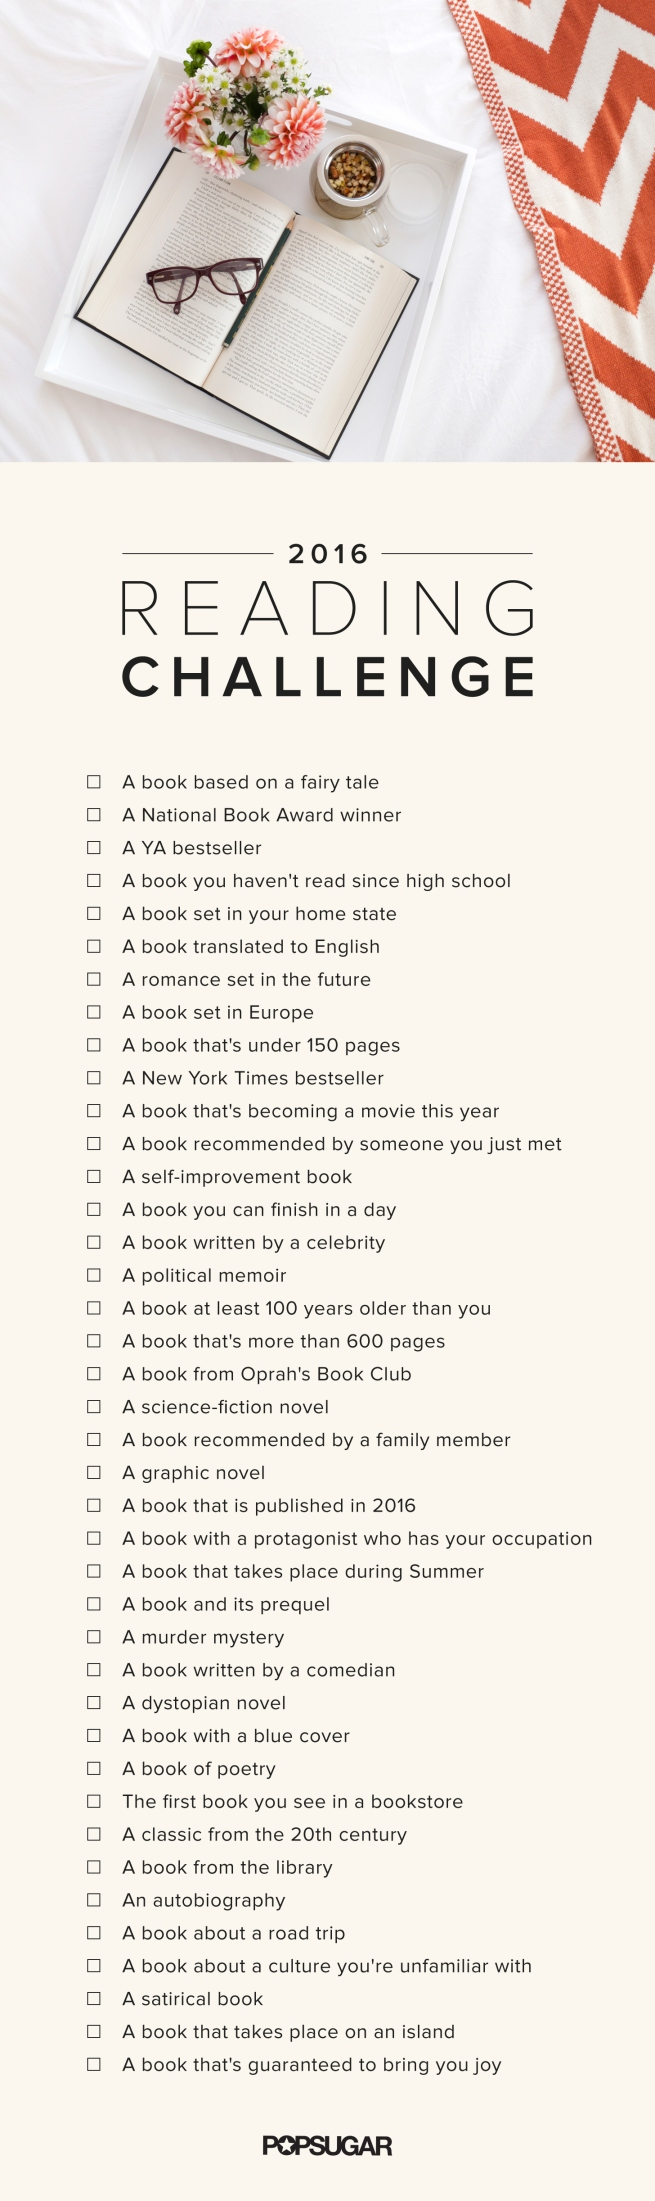 20e491b890bb19b9_PS15_Love_2016ReadingChallenge_Pin_List.jpg